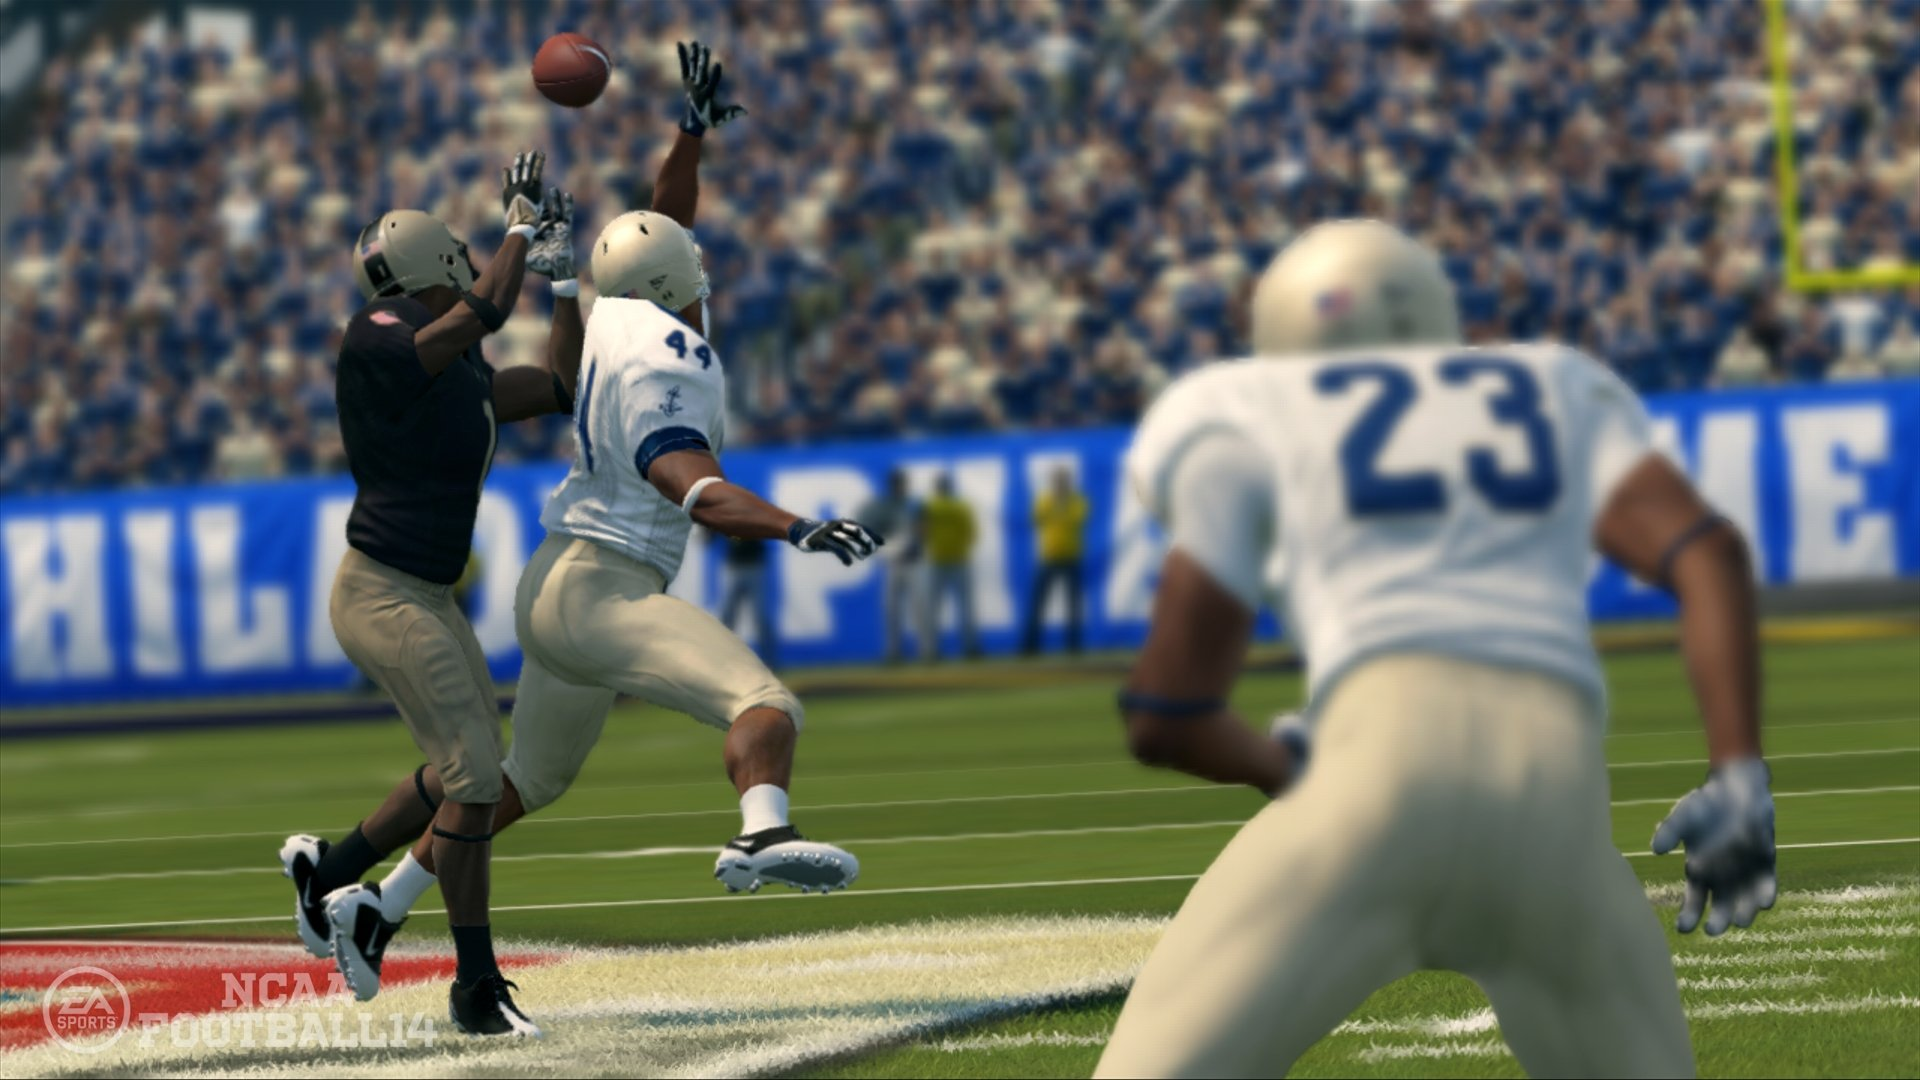 20/4/2013 - NCAA 14 - Screen 7